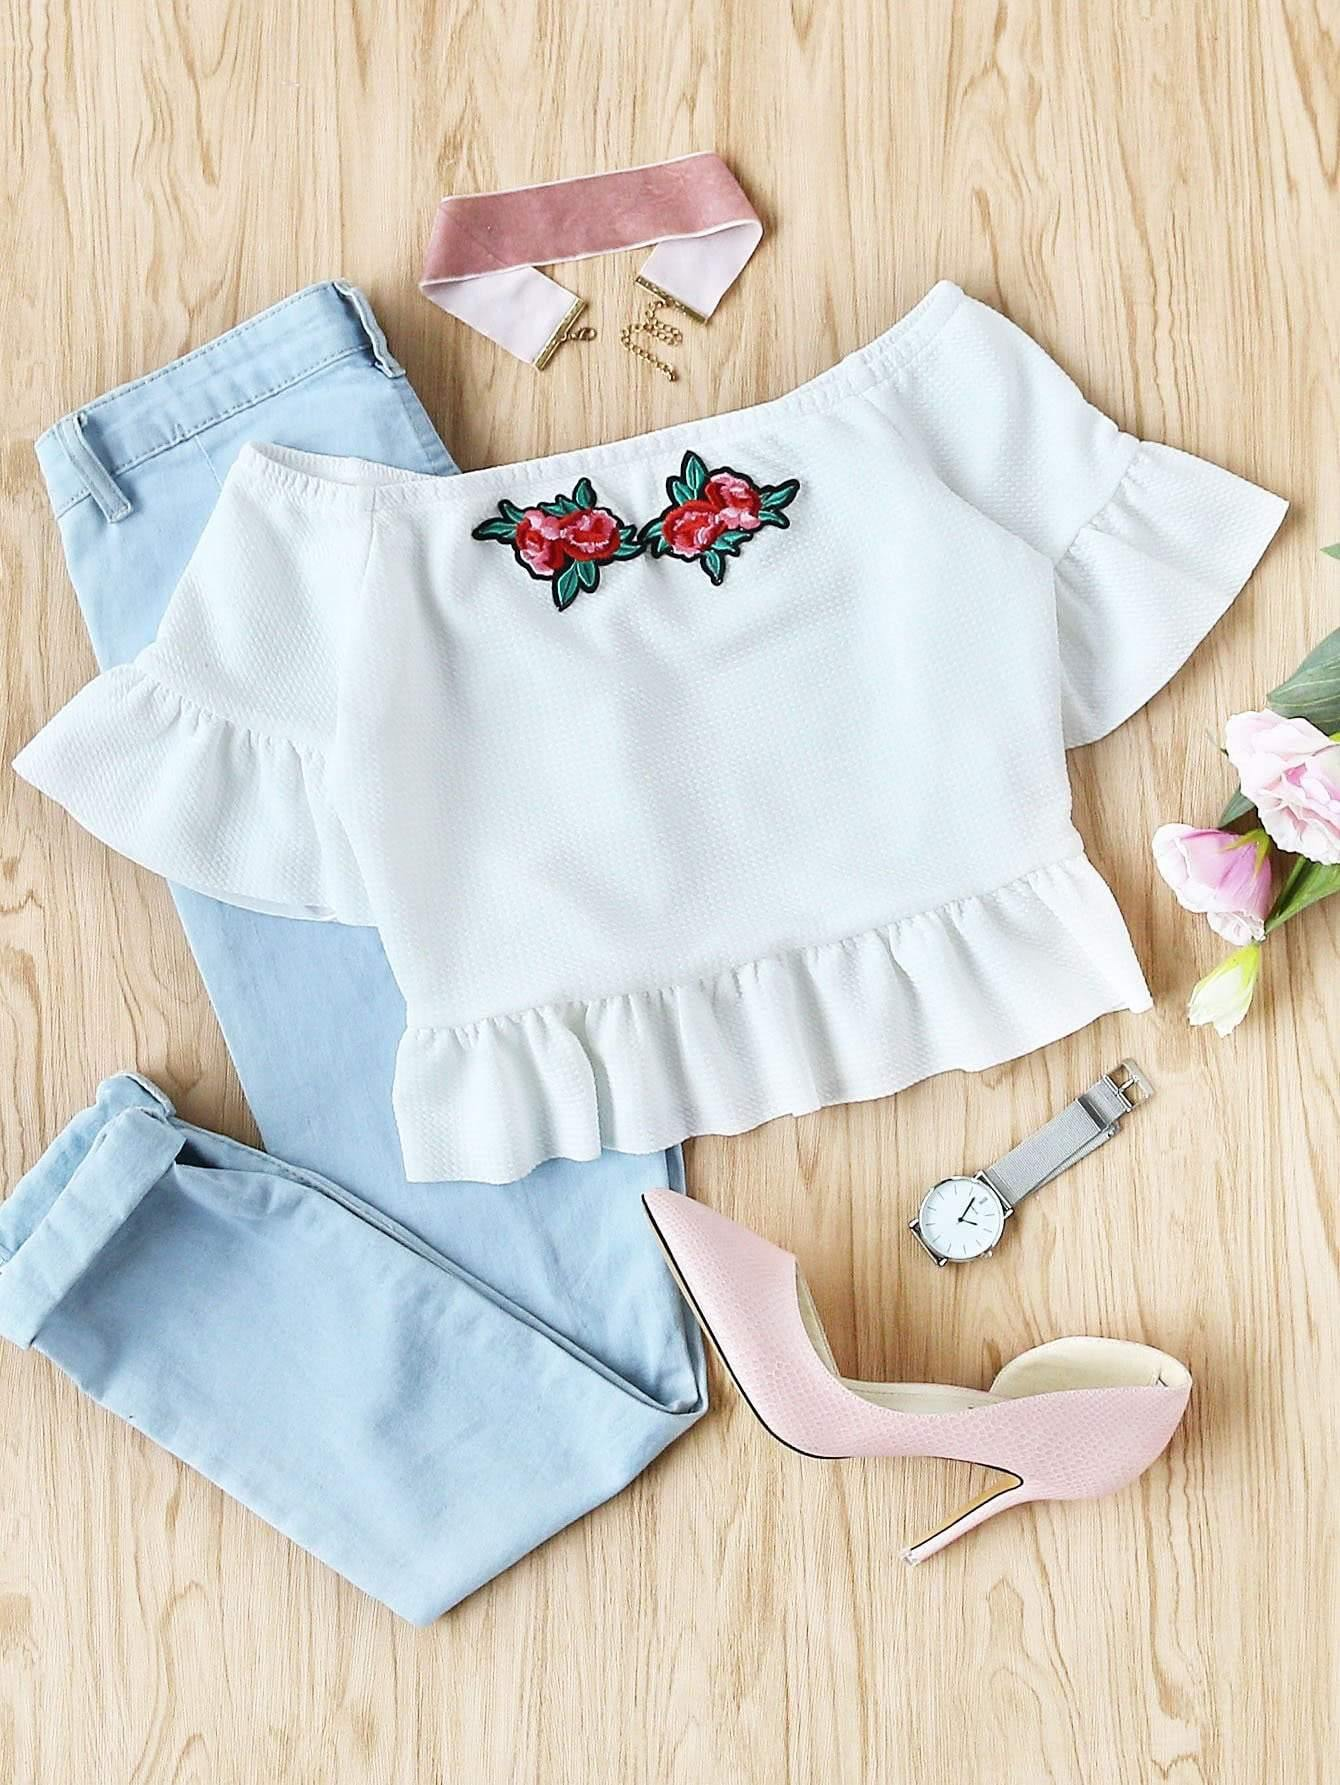 Embroidered Rose Applique Textured Bardot Top - Tops - Zooomberg - Zoomberg